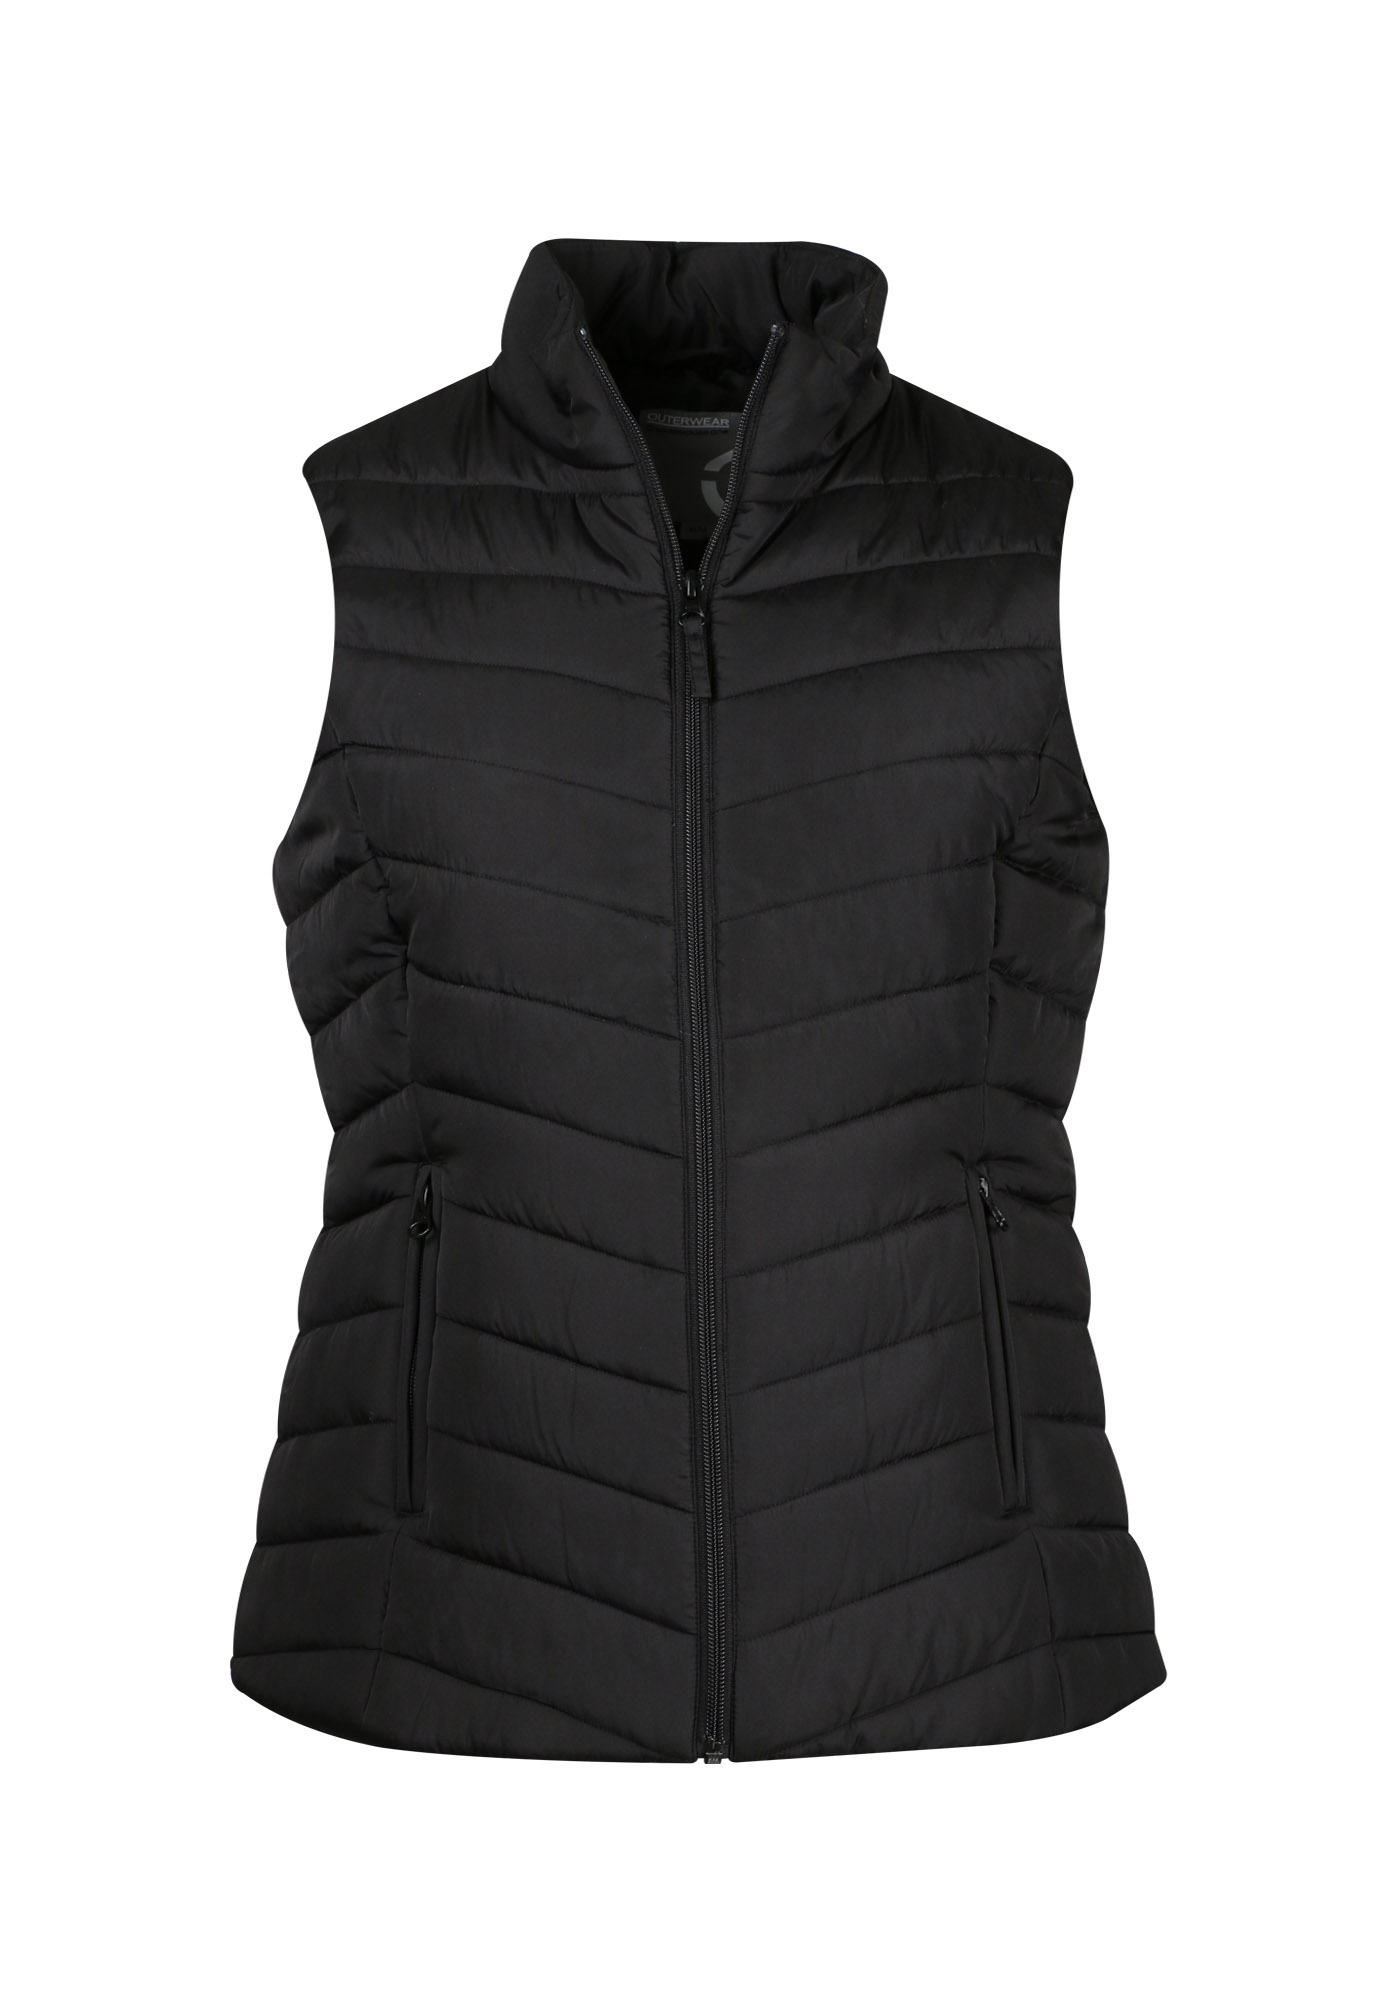 c2b9c22fd82c Women's Quilted Vest | Warehouse One